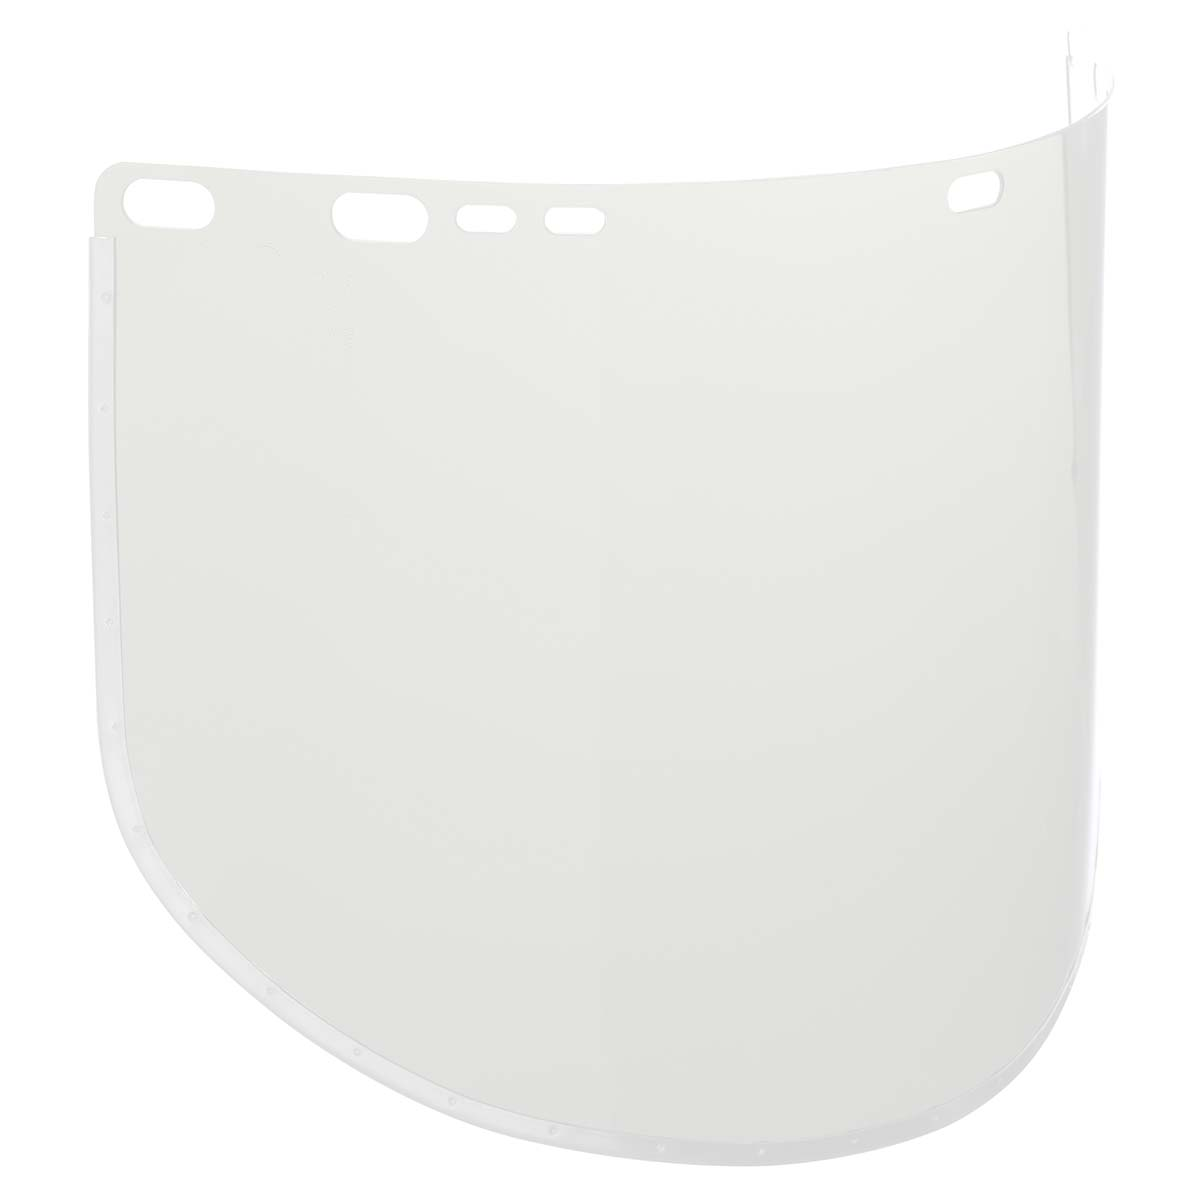 """Jackson Safety F30 Acetate Face Shield (29091), 9"""" x 15.5"""", Clear, Reusable Face Protection, 50 Shields / Case"""